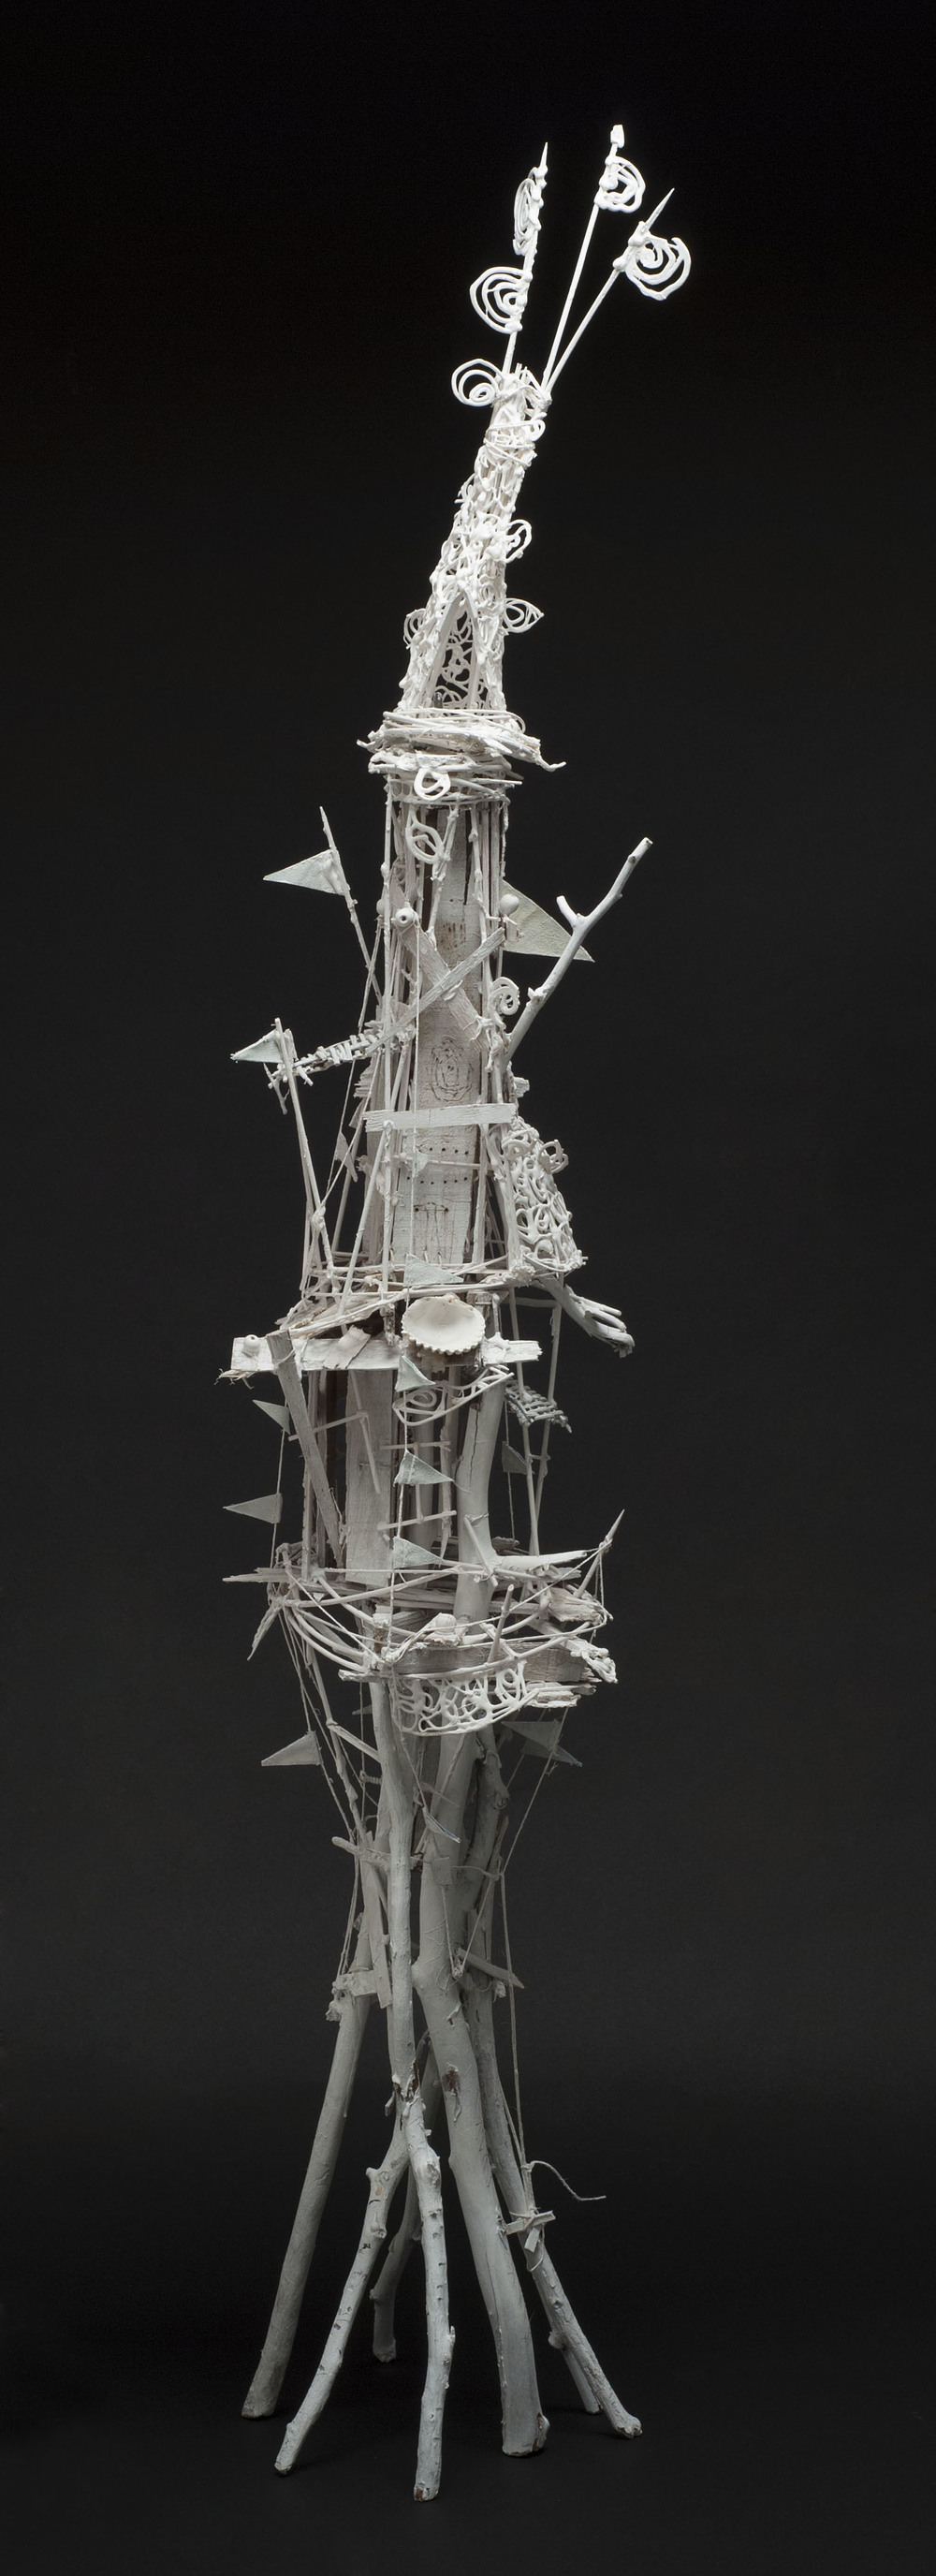 Sylvain Corentin    White Tower (small)  , 2012 Wood, canvas, wire, yarn, glue, paint 53.75 x 9 x 9.5 inches  /  136.5 x 22.9 x 24.1 cm  /  SCo 8